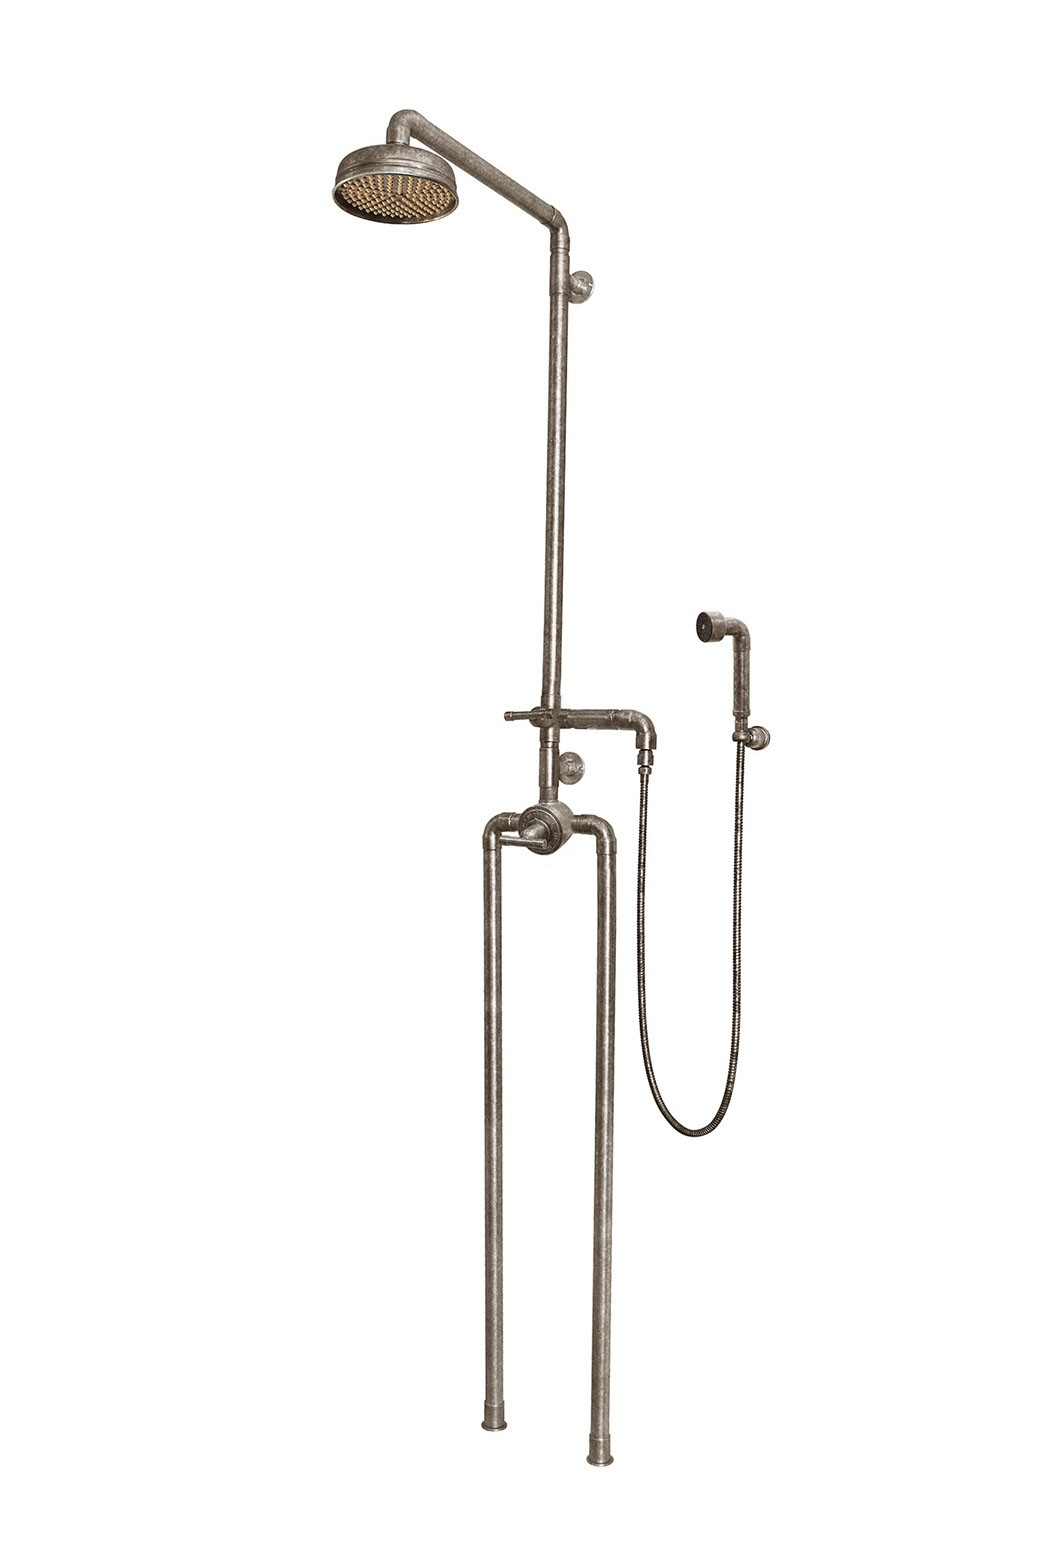 SONOMA FORGE WB-SHW-1150 WATERBRIDGE 91 1/2 INCH FLOOR MOUNT EXPOSED THERMOSTATIC SHOWER SYSTEM WITH HAND SHOWER